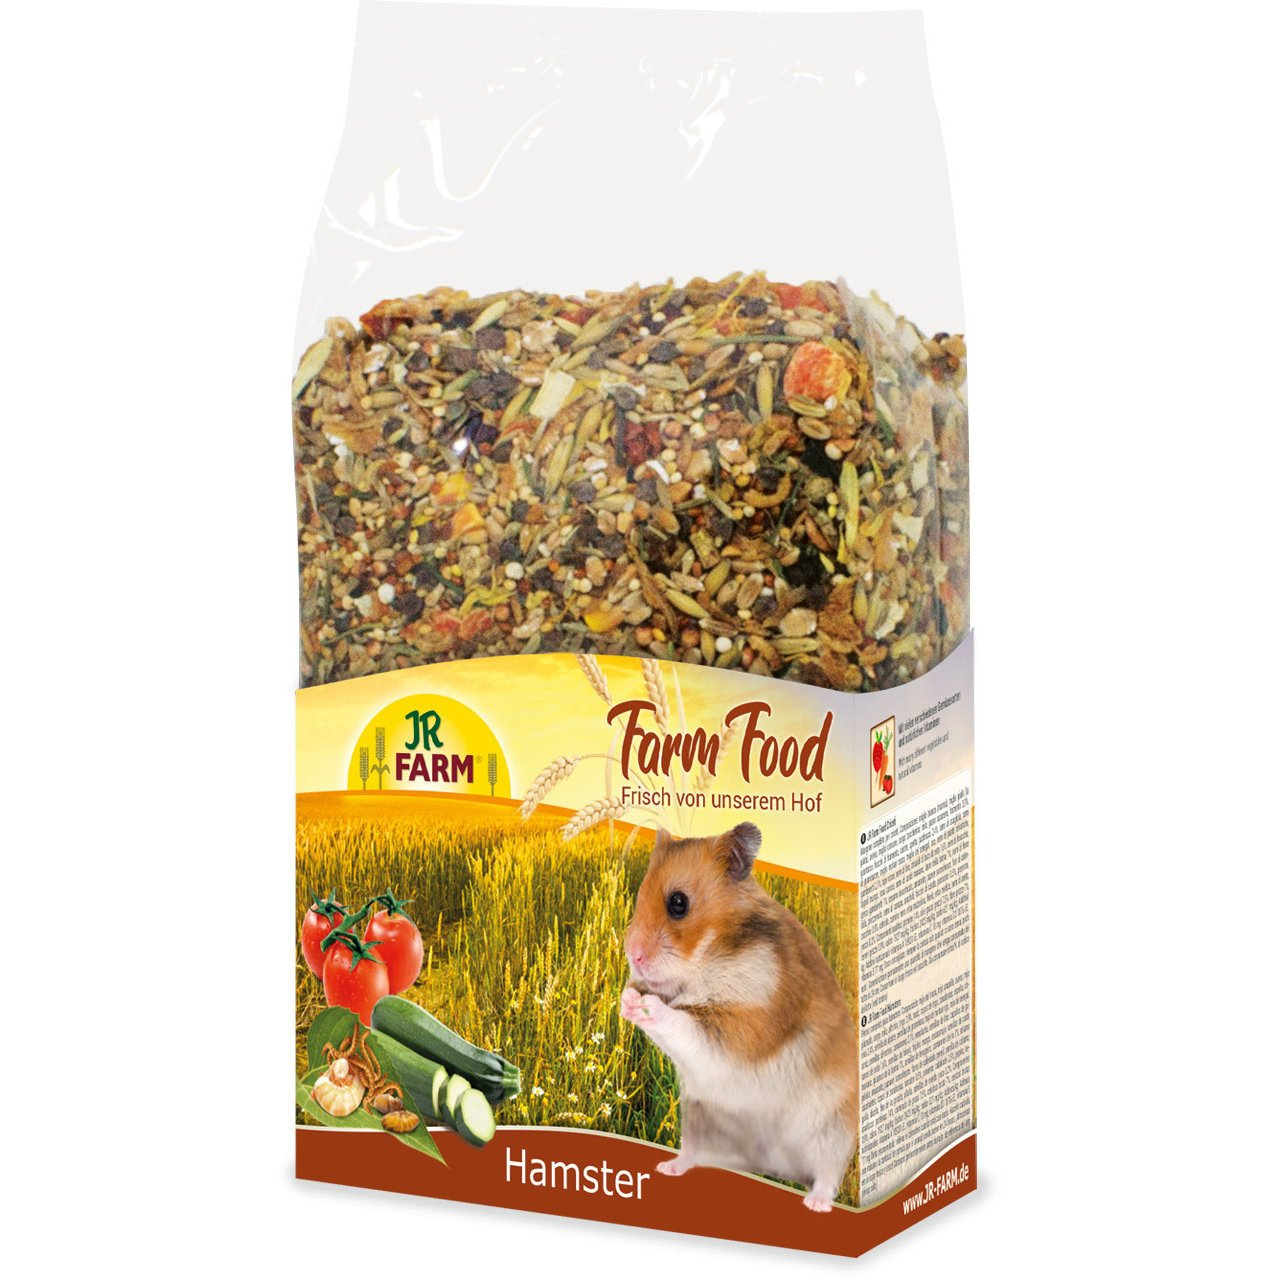 JR Farm Food Hamster Adult Hamsterfutter, 500 g